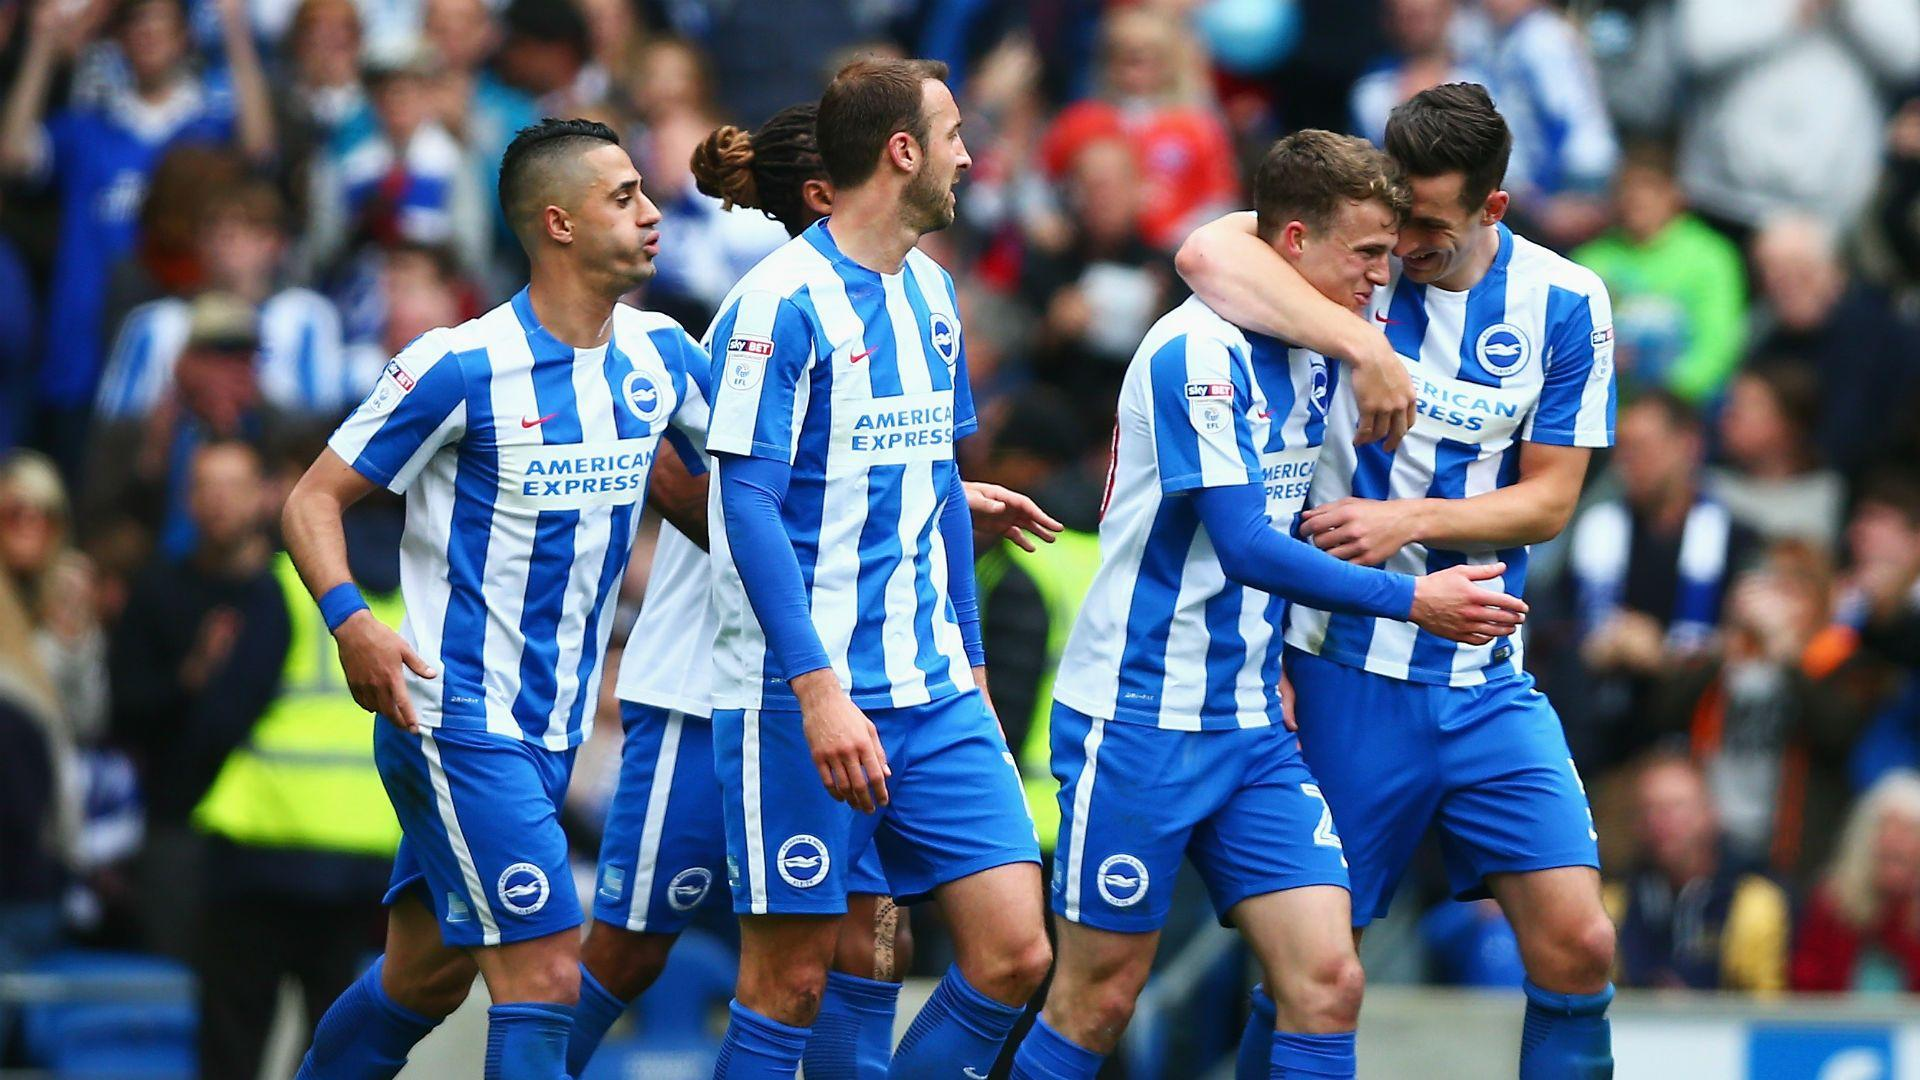 Dale Stephens Wallpaper: Brighton & Hove Albion F.C. Wallpapers